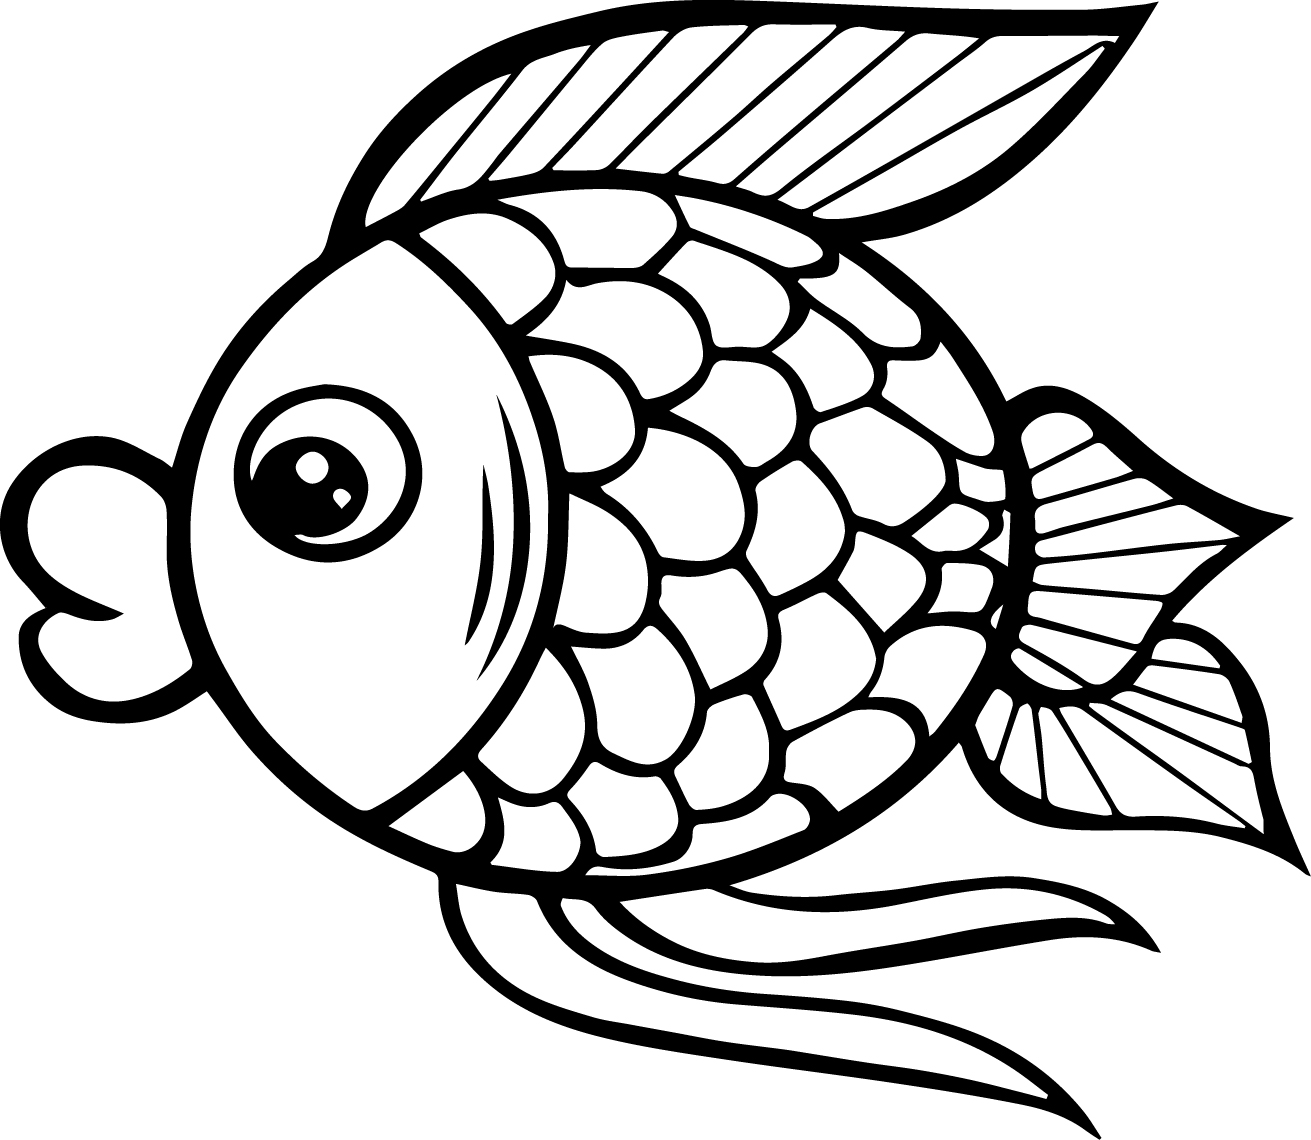 easy fish coloring pages simple fish coloring page coloring home pages fish easy coloring